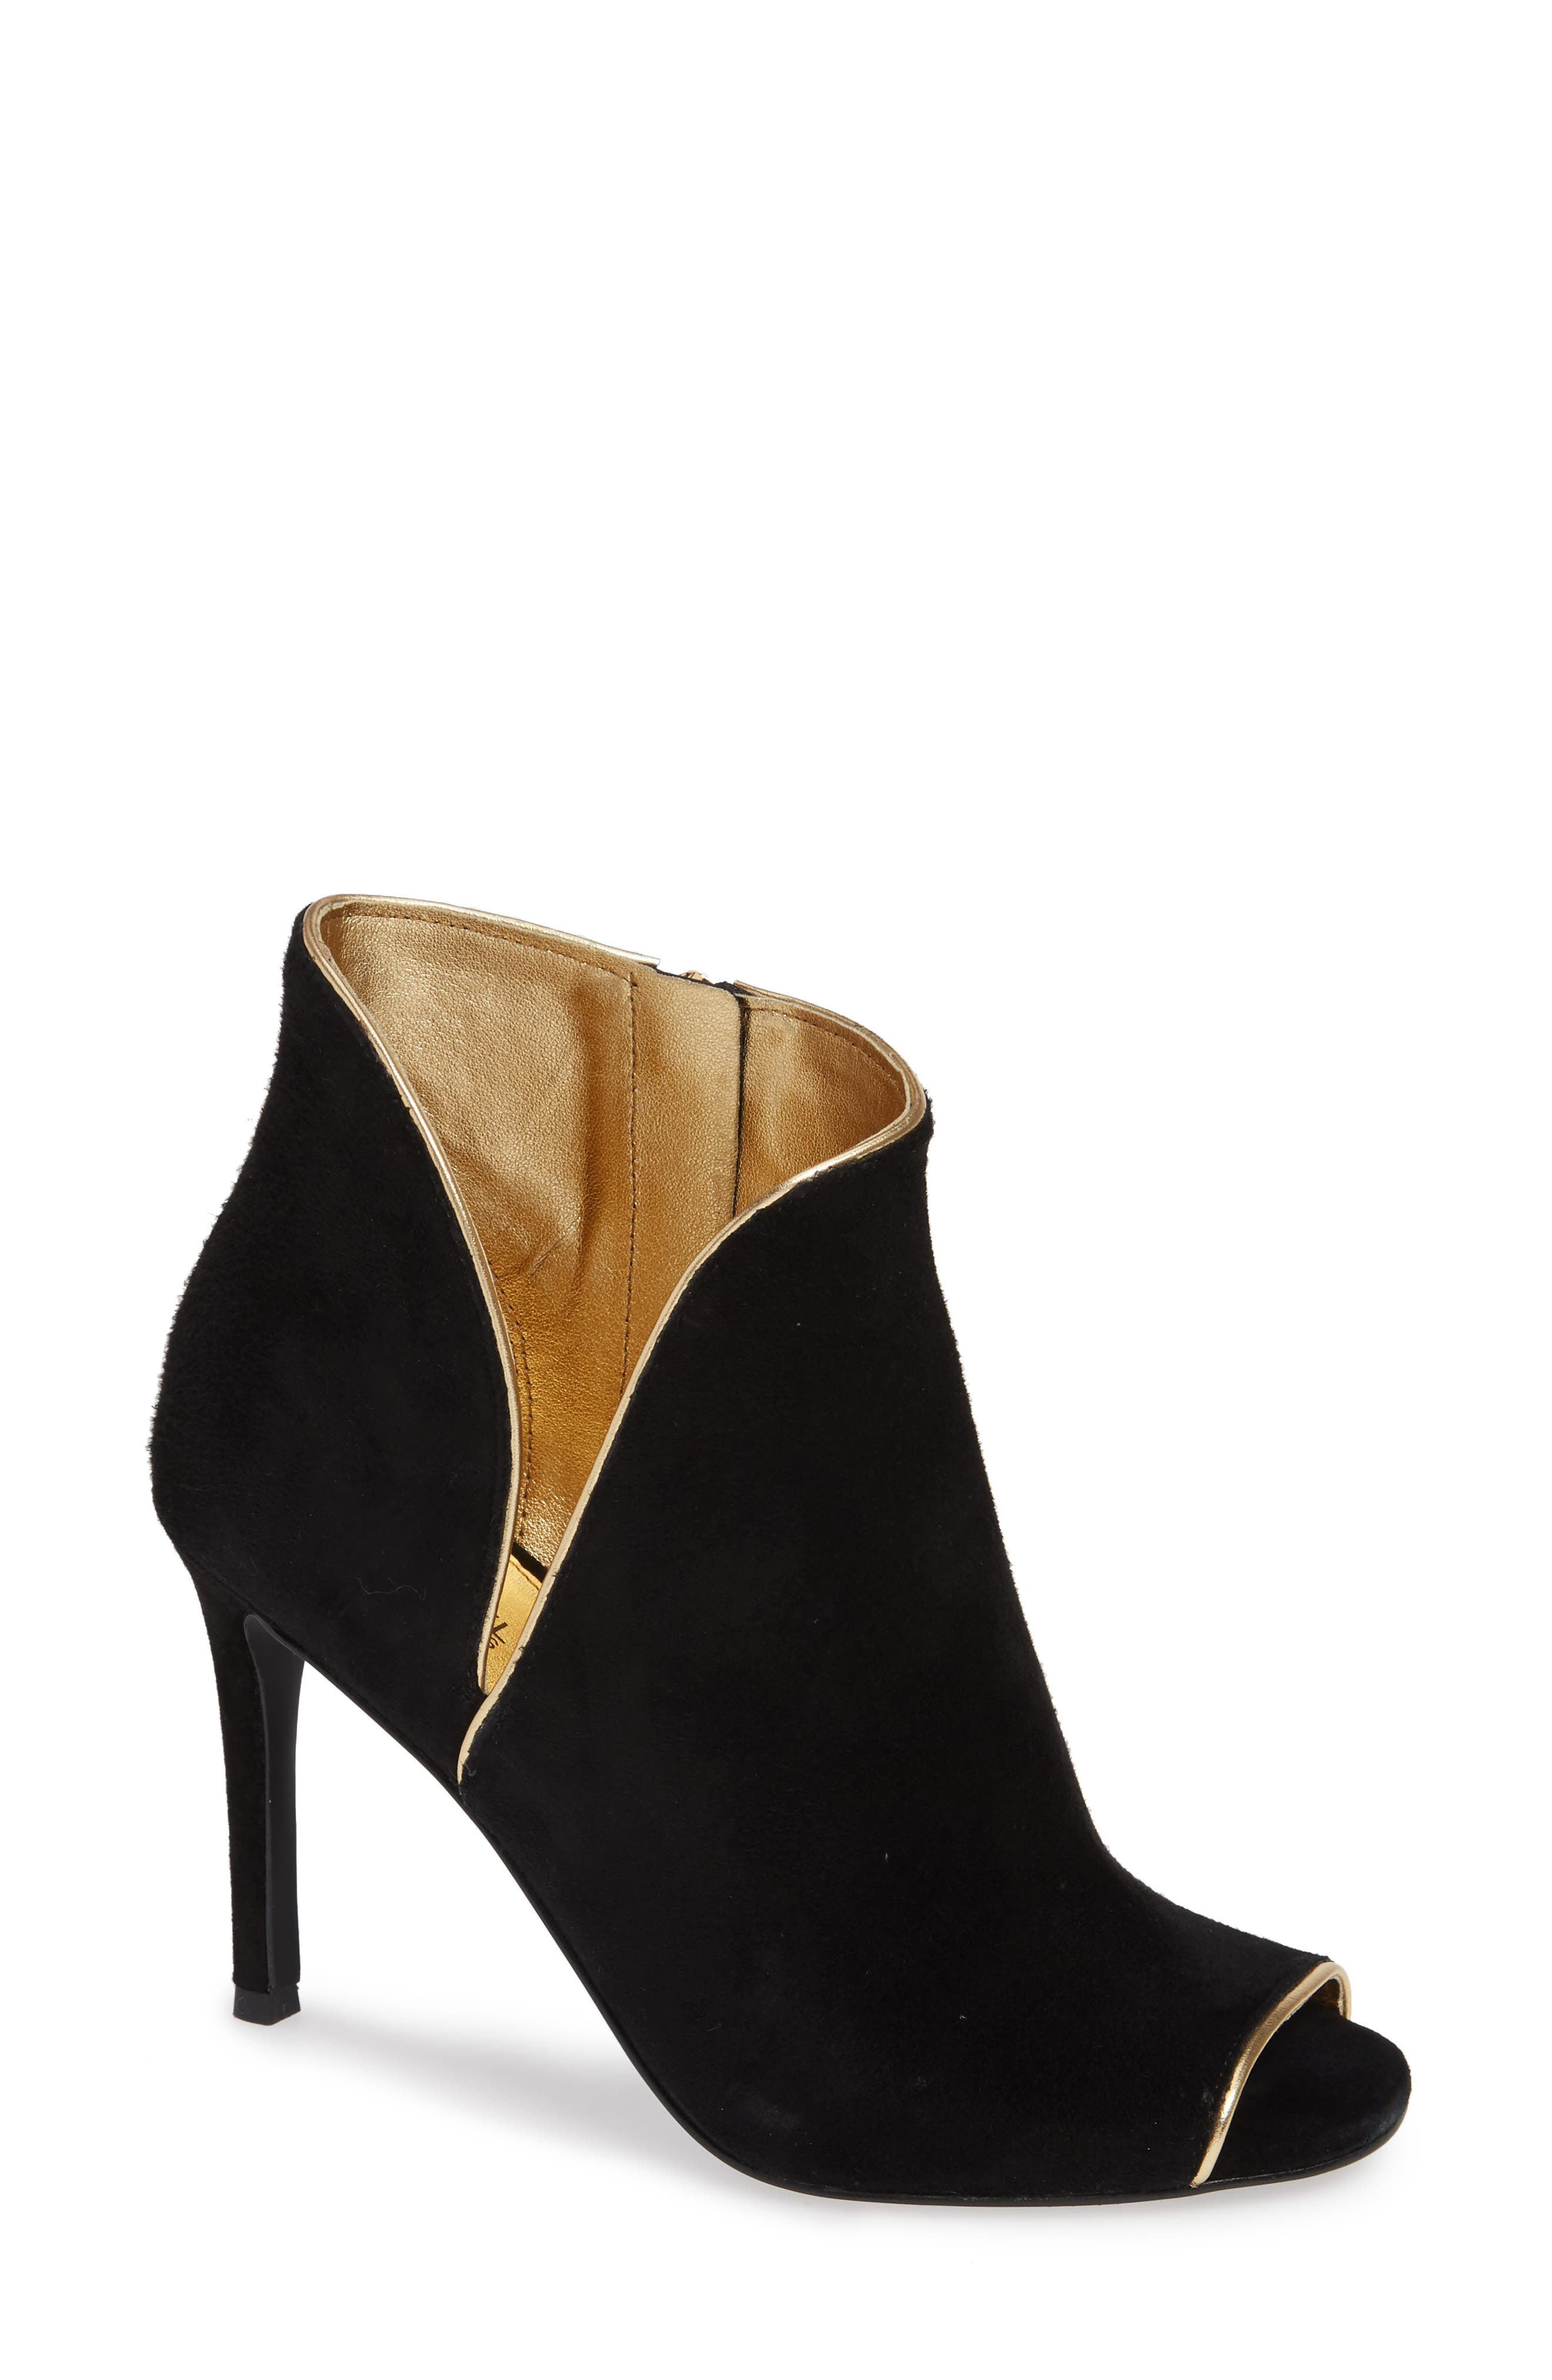 Harper Open Toe Bootie in Black Suede